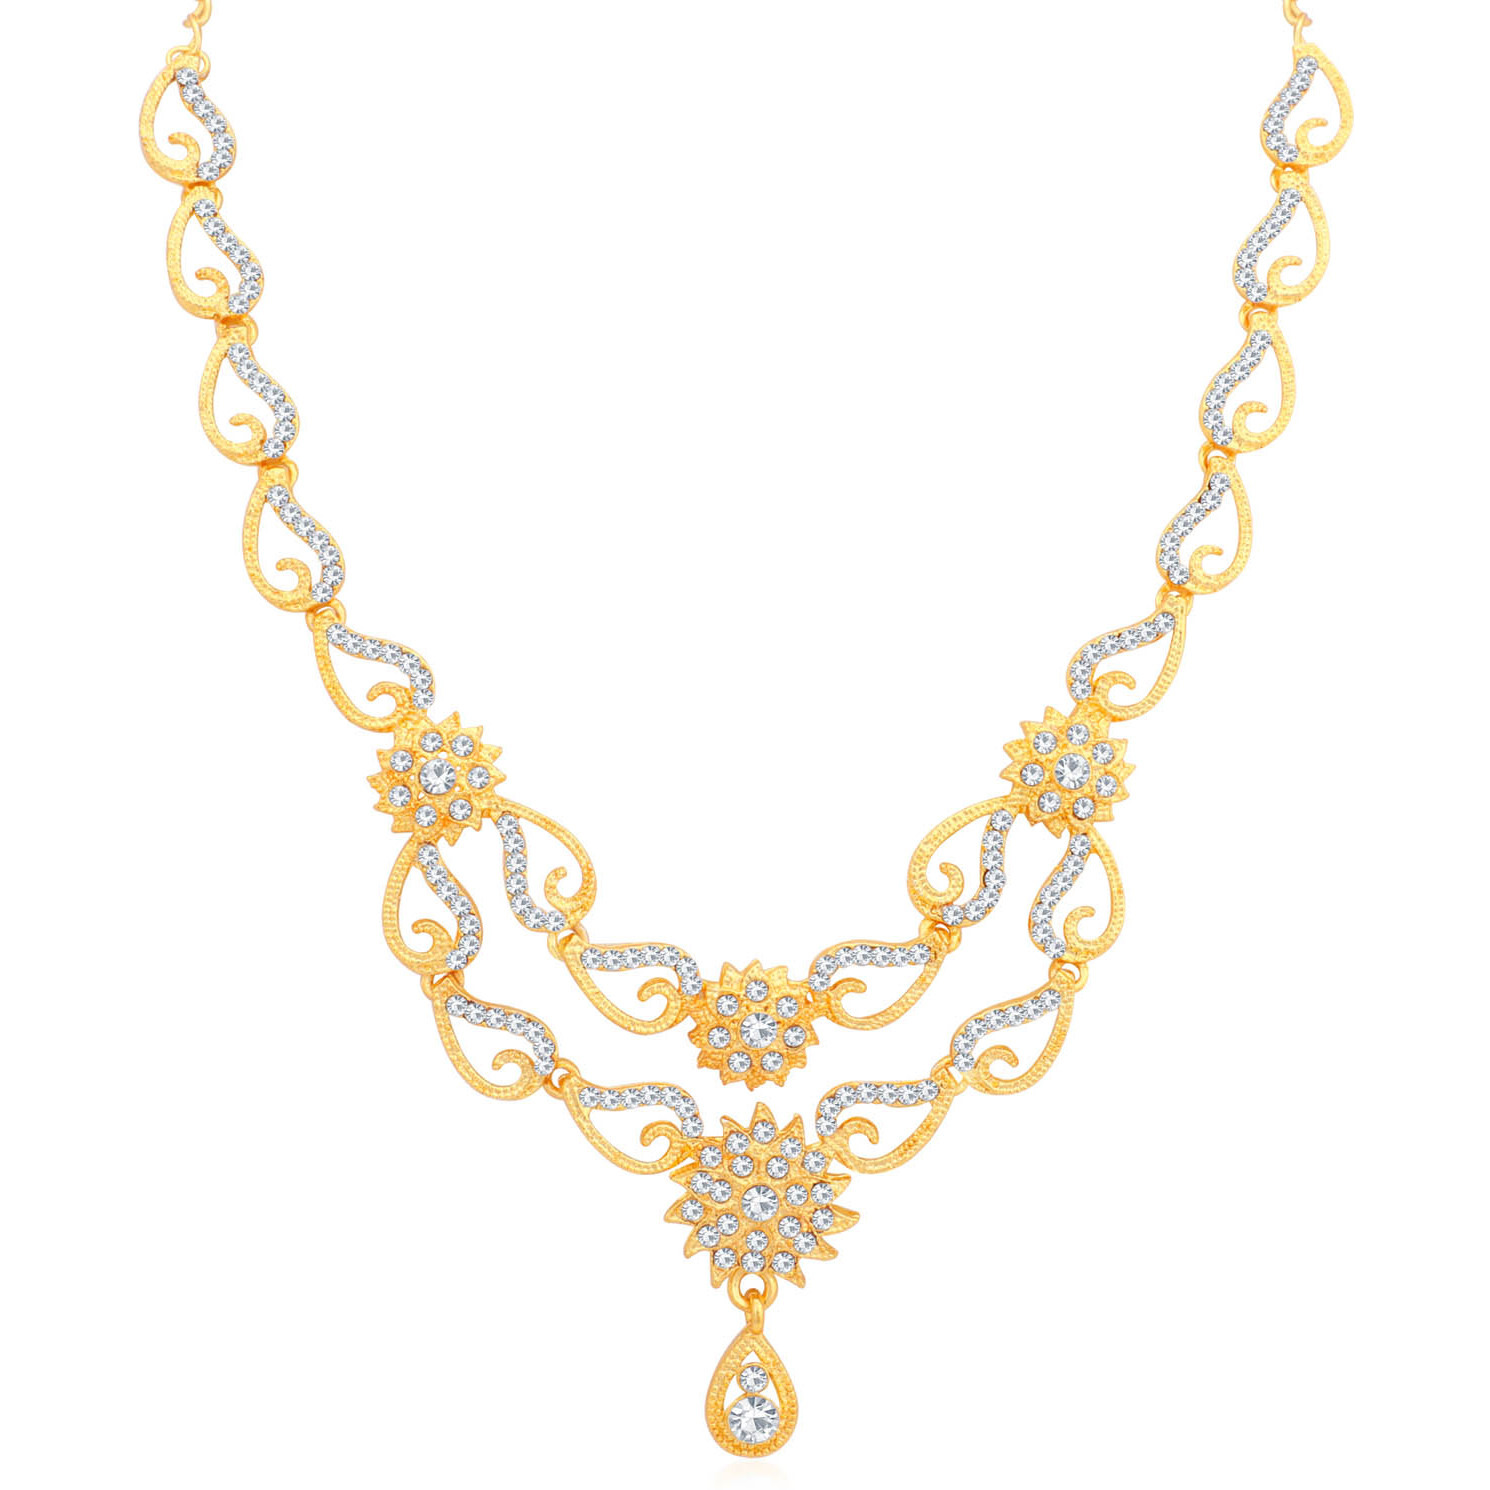 Sukkhi Indian stylish Bollywood jewelry collection Exclusive Floral Gold Plated Necklace Set for Women